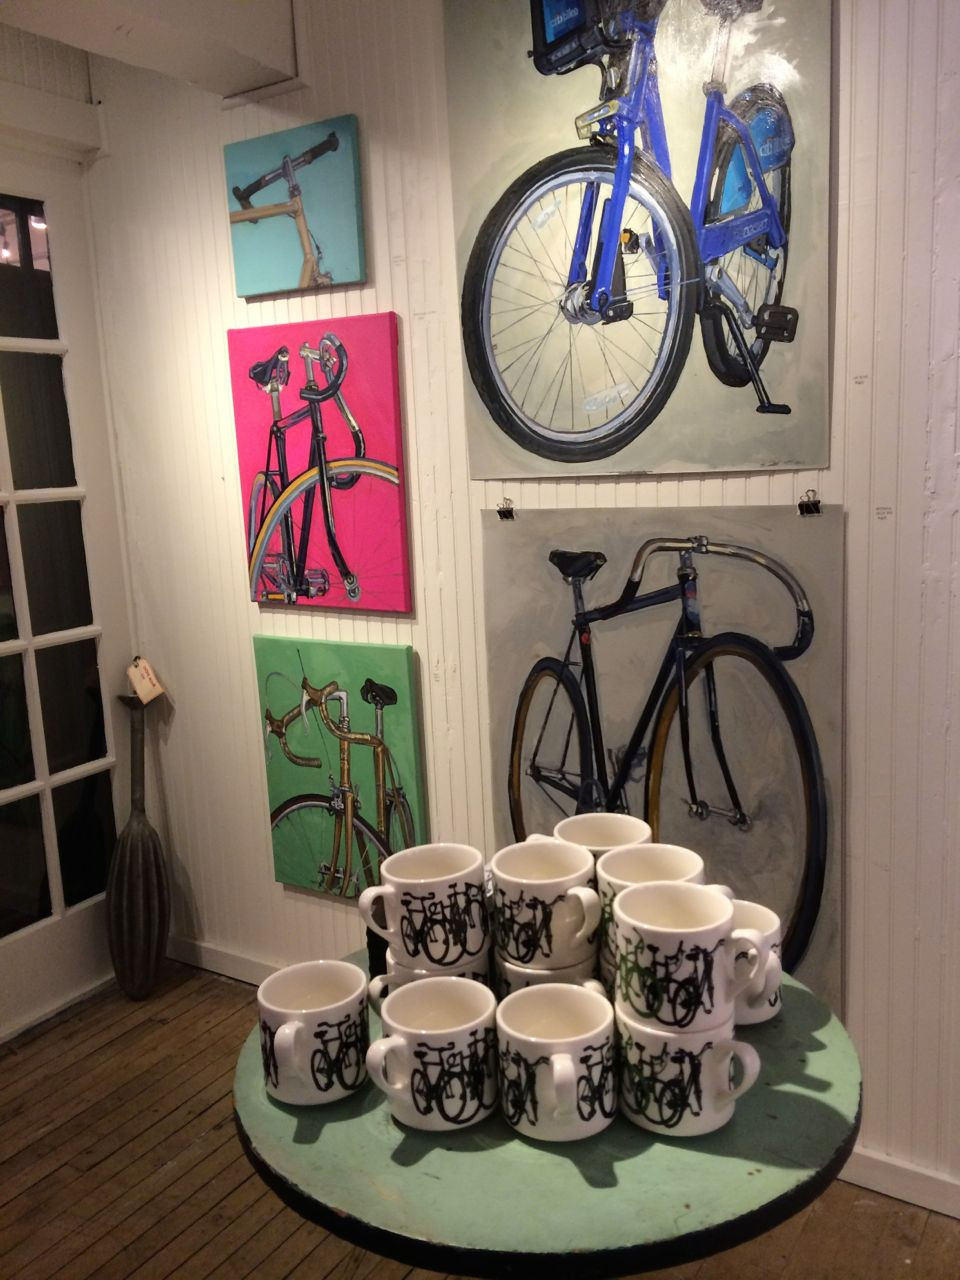 Bicycle paintings by Taliah Lempert and her mugs at Fishs Eddy